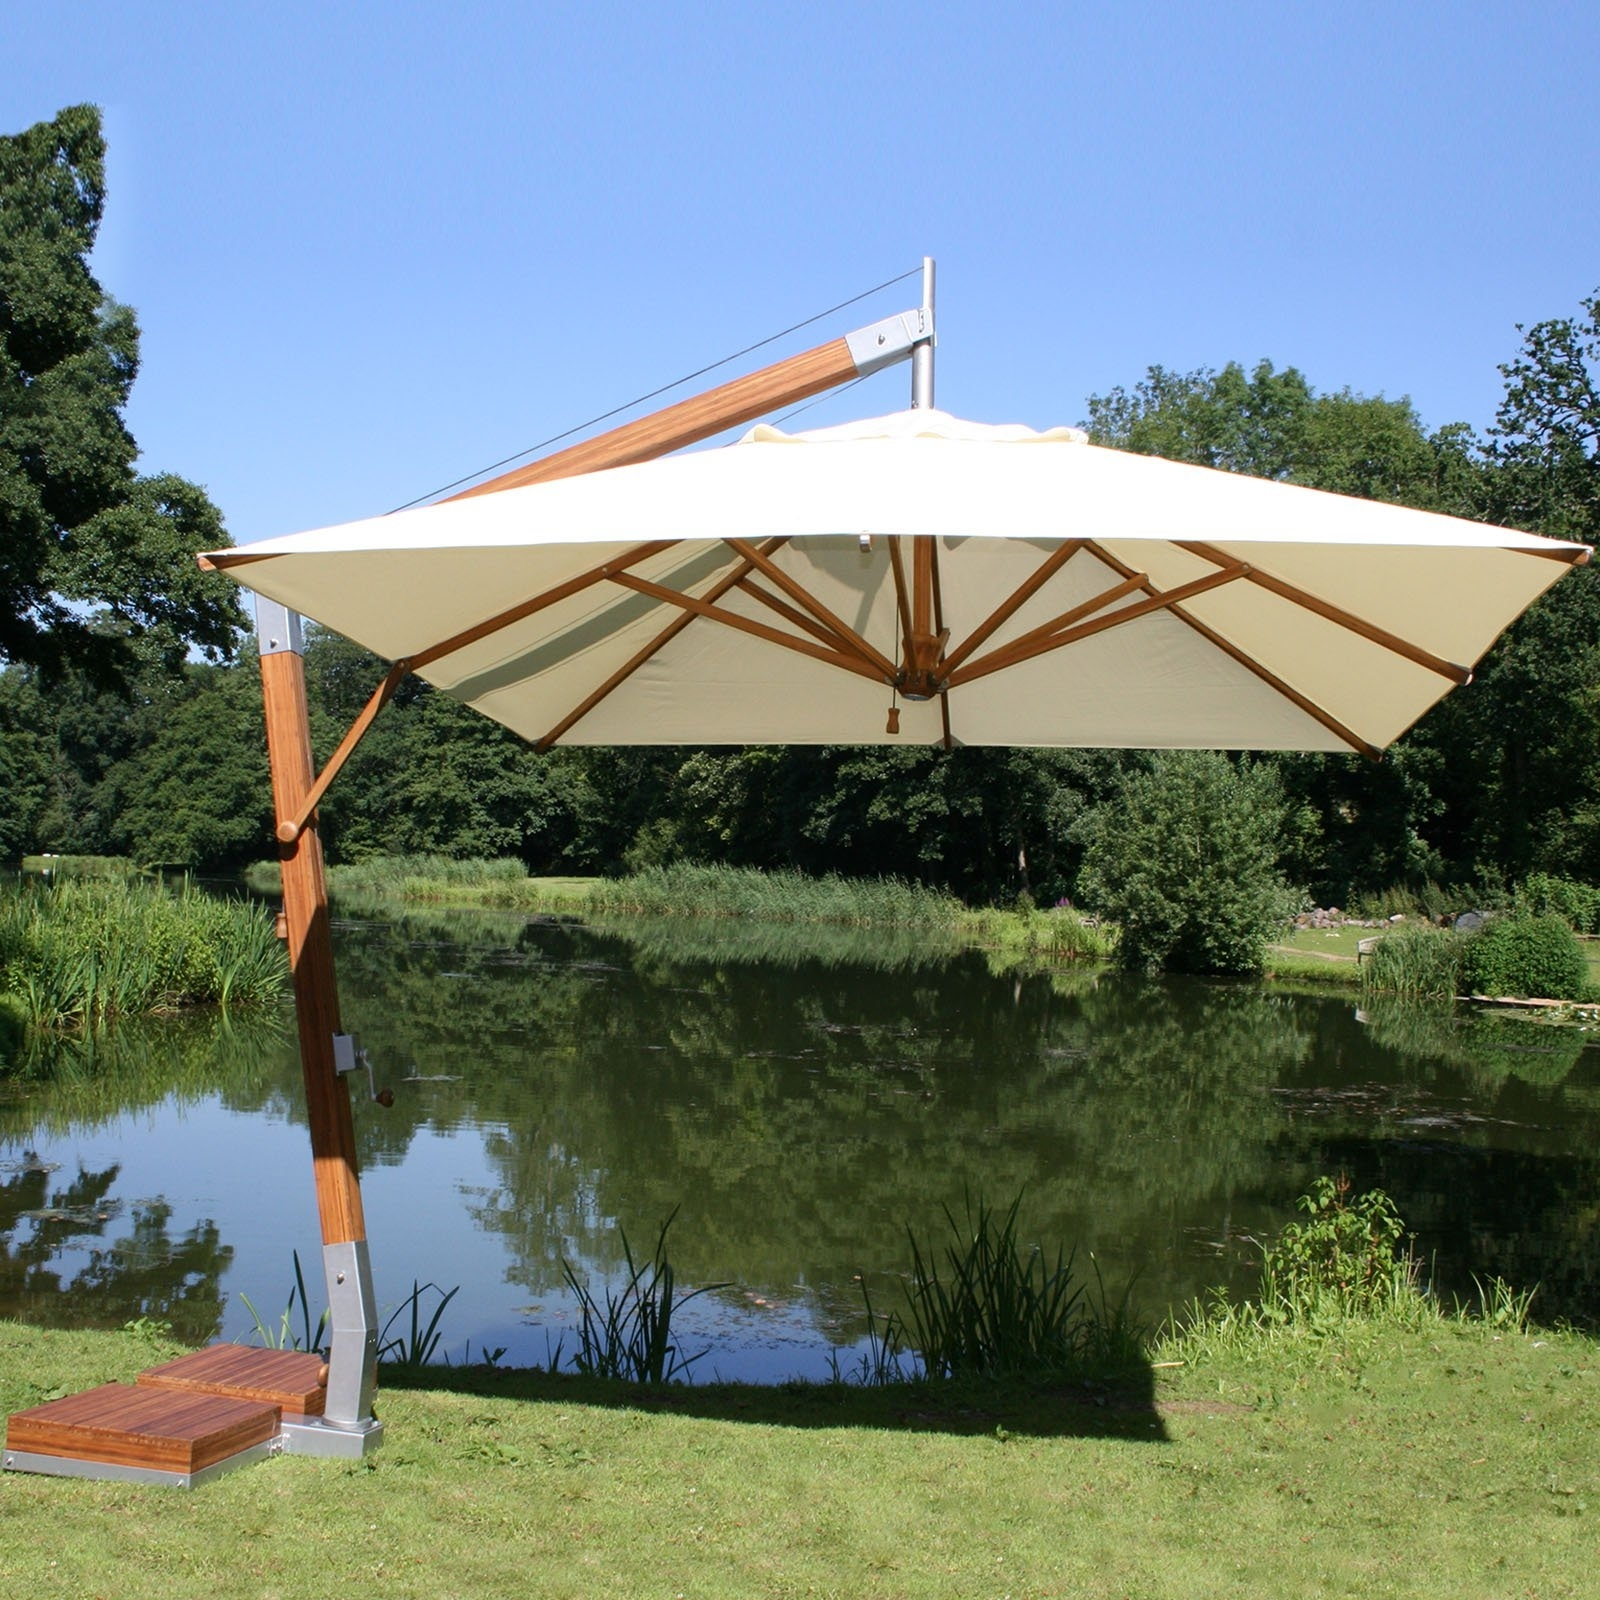 Trendy Furniture: Offset Patio Umbrellas For Your Outdoor Ideas Throughout Wooden Patio Umbrellas (View 6 of 20)